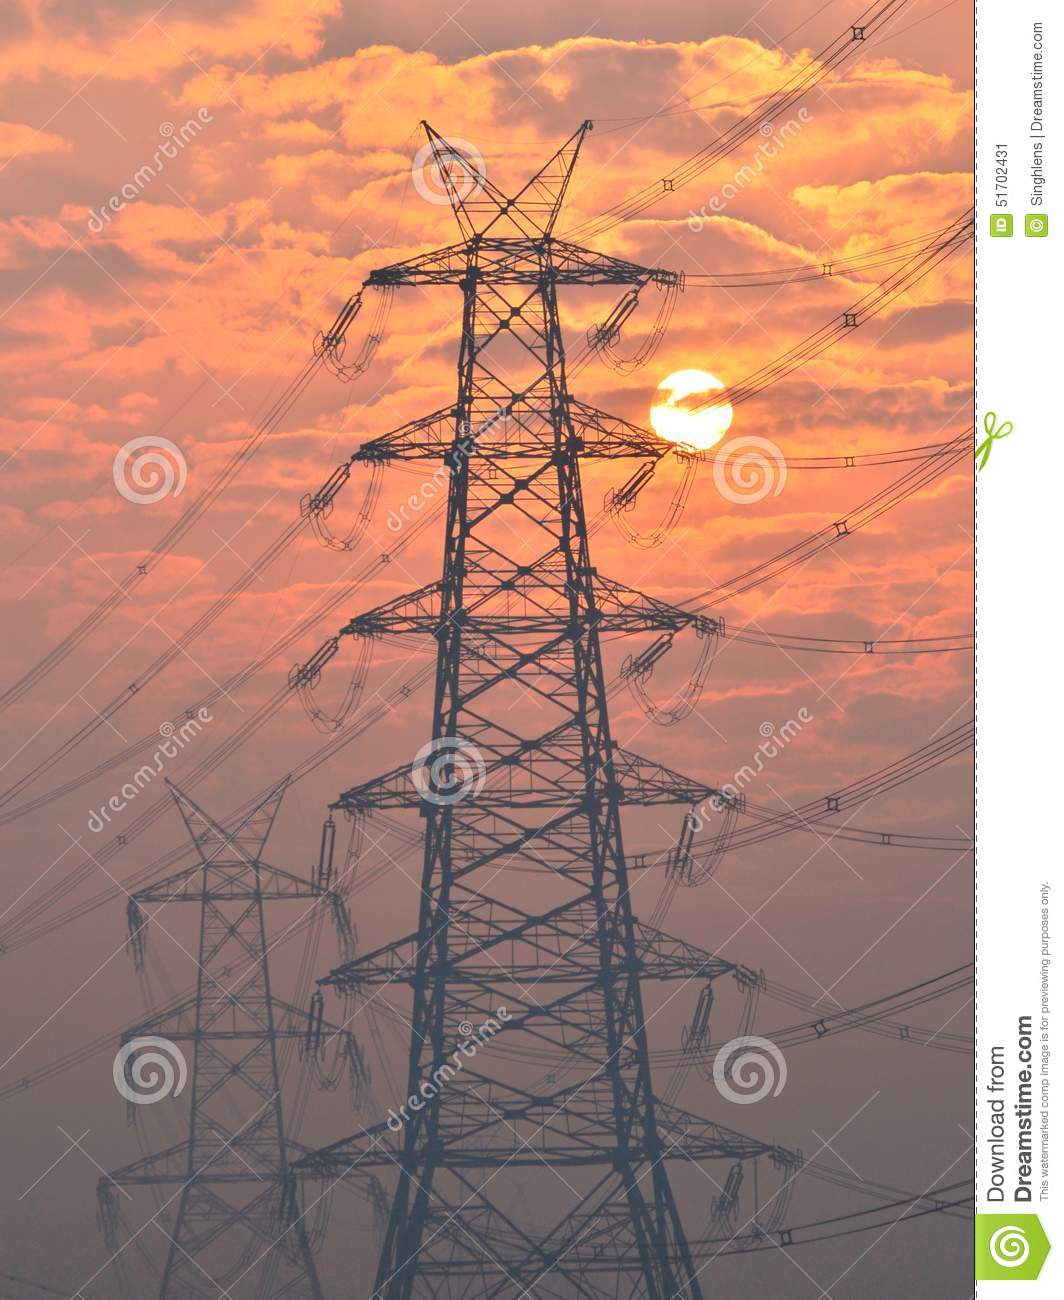 High Voltage Electrical Lines : Electrical pylon and high voltage power lines near